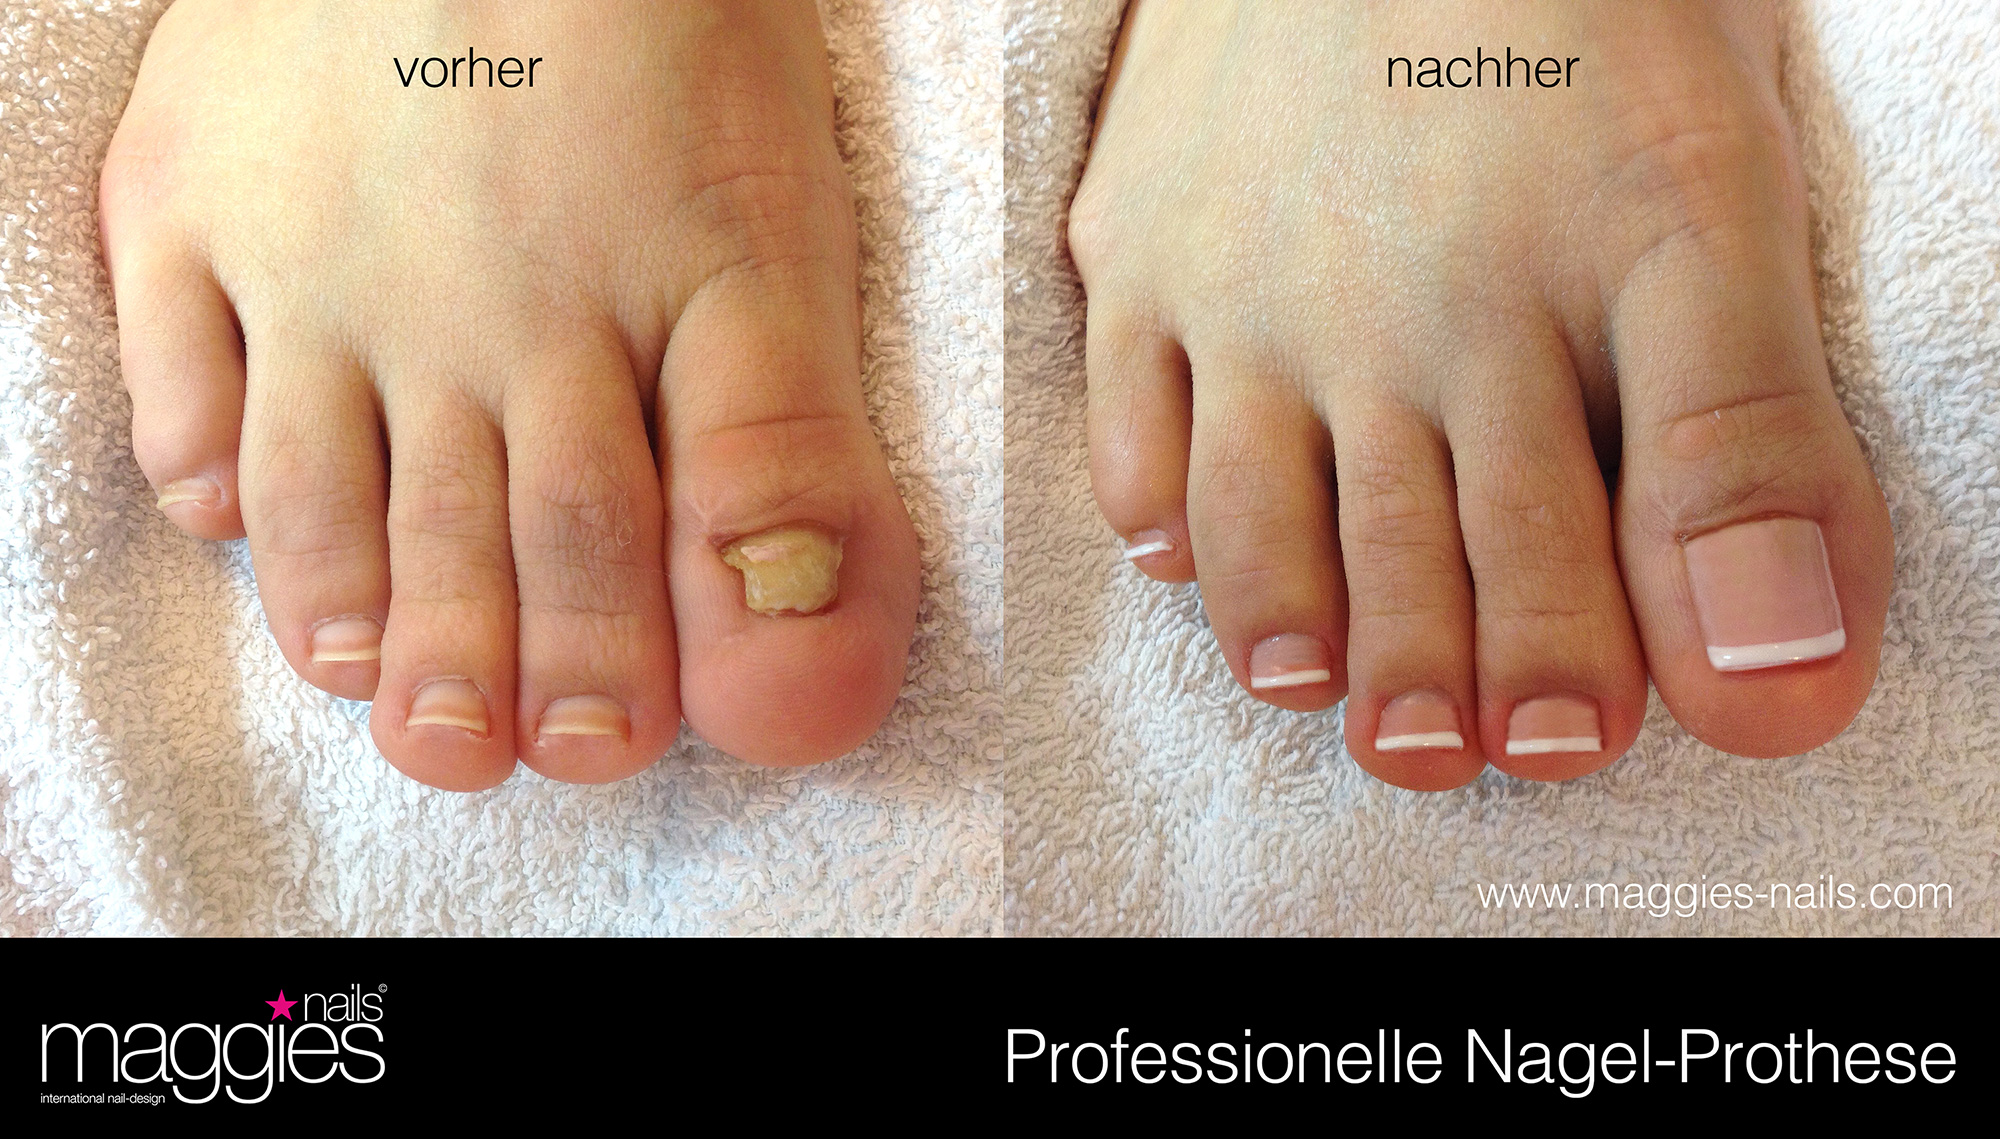 Nagelprothese | maggies nails * international nail-design